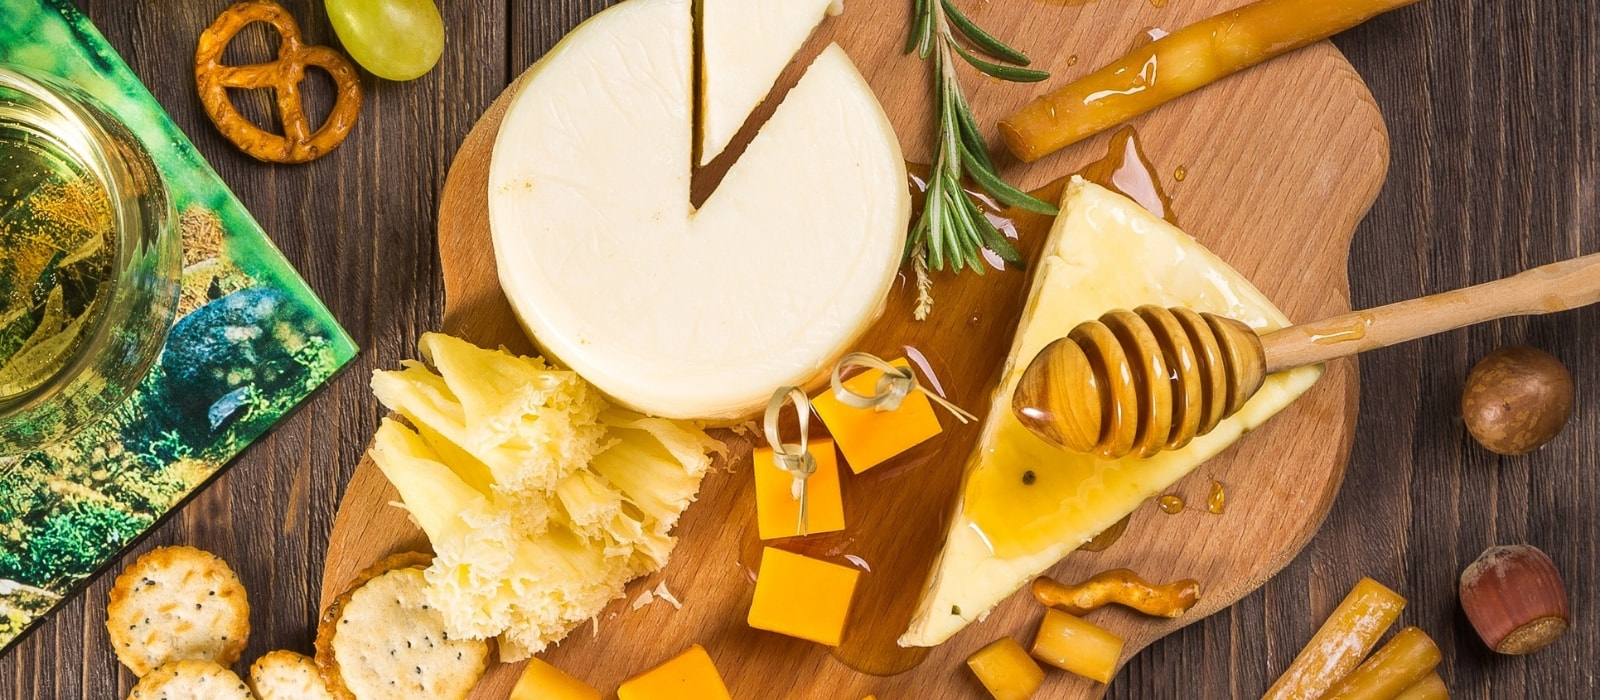 50 Books About Cheese That will Teach you Everything you Need to Know #cheese| Books about Cheese| Everything You Need to Know About Cheese| Pairing Cheese with Wine| Best Cheese Books to Read| #cheeseandwine #wine #books